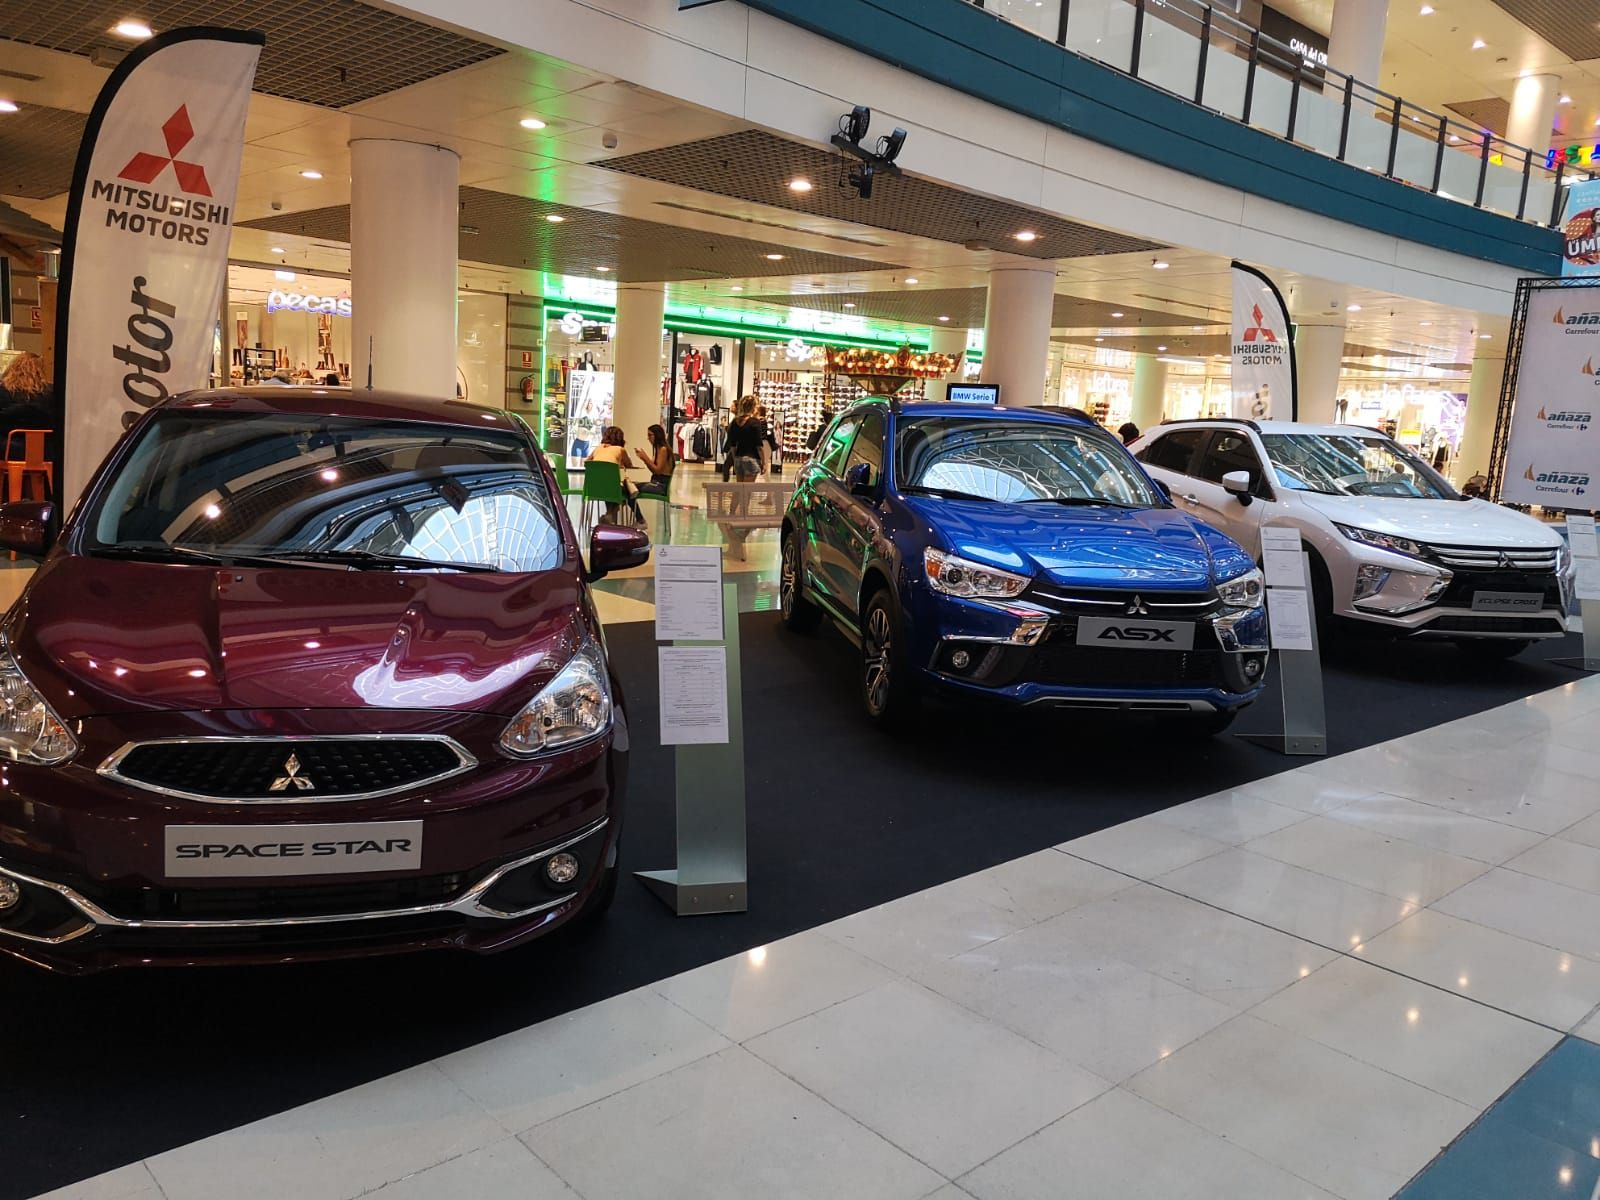 Asx, Eclipse Cross y Space Star en el Centro Comercial Añaza Carrefour